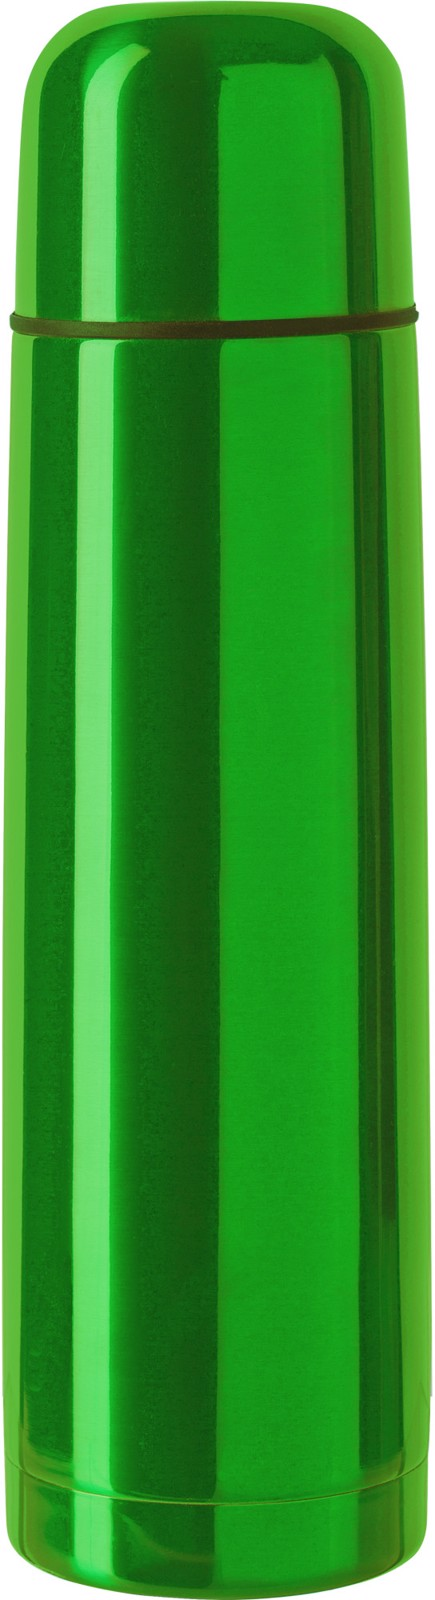 Stainless steel double walled flask - Green